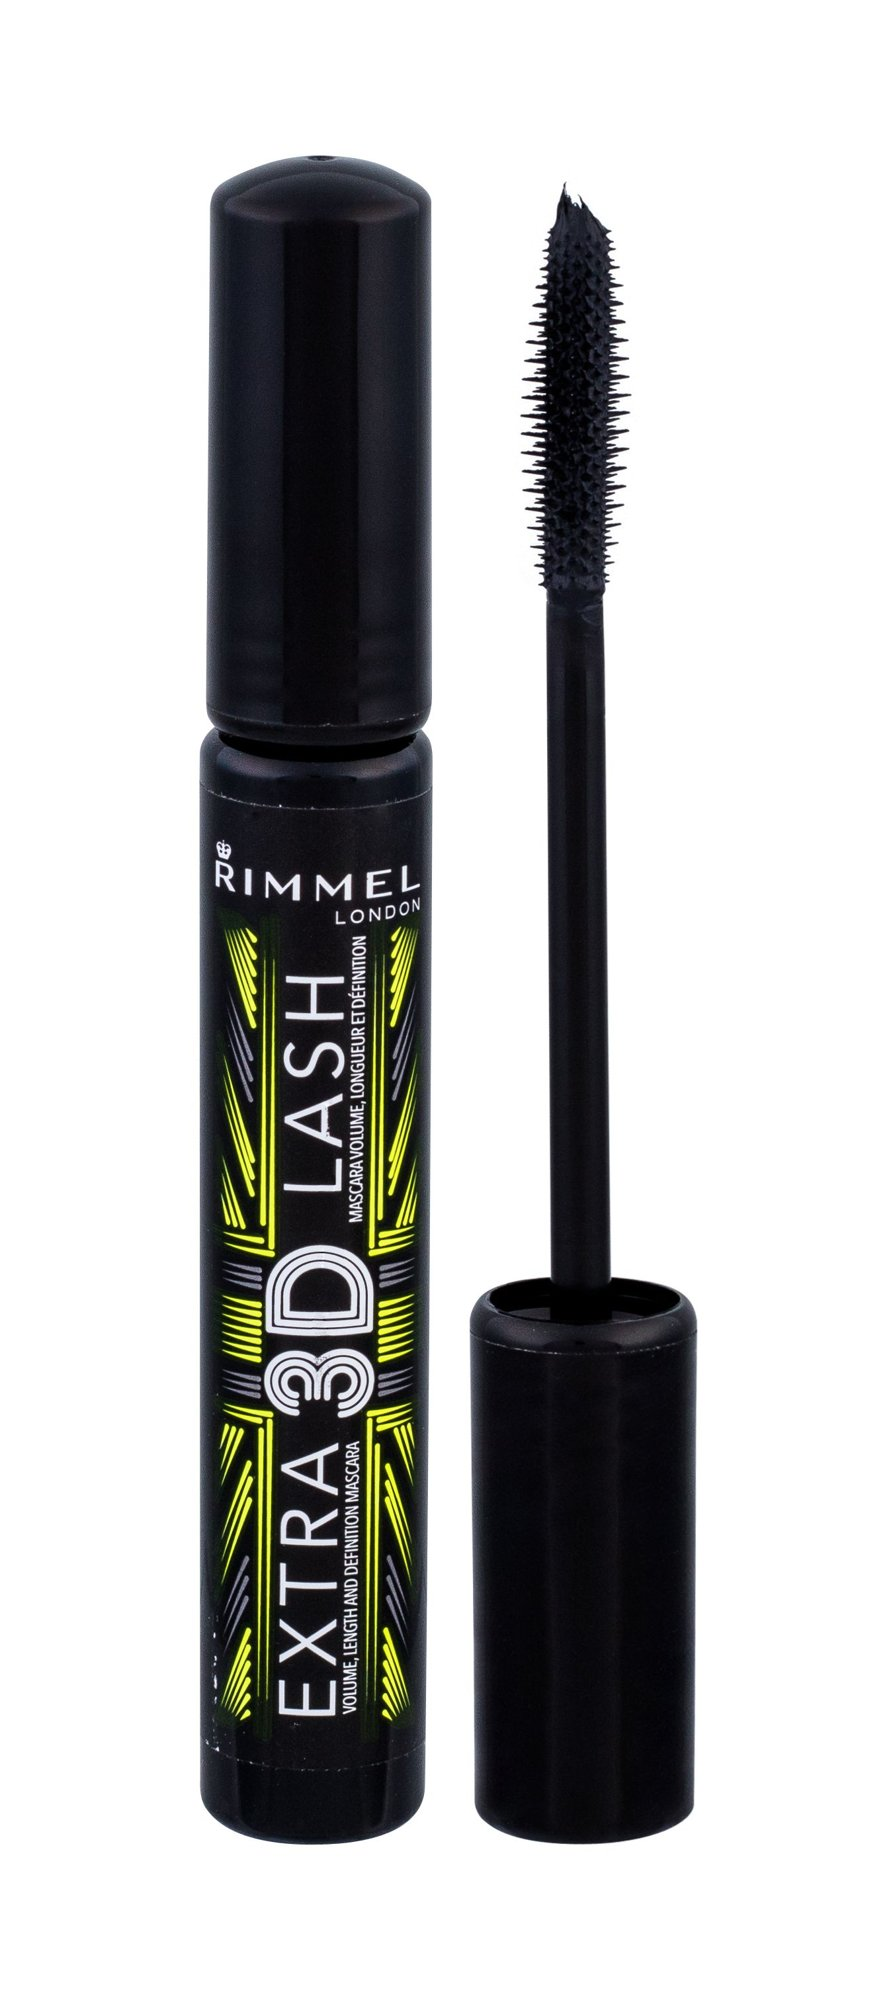 Rimmel London Mascara Extra 3D Lash Cosmetic 8ml 003 Extreme Black